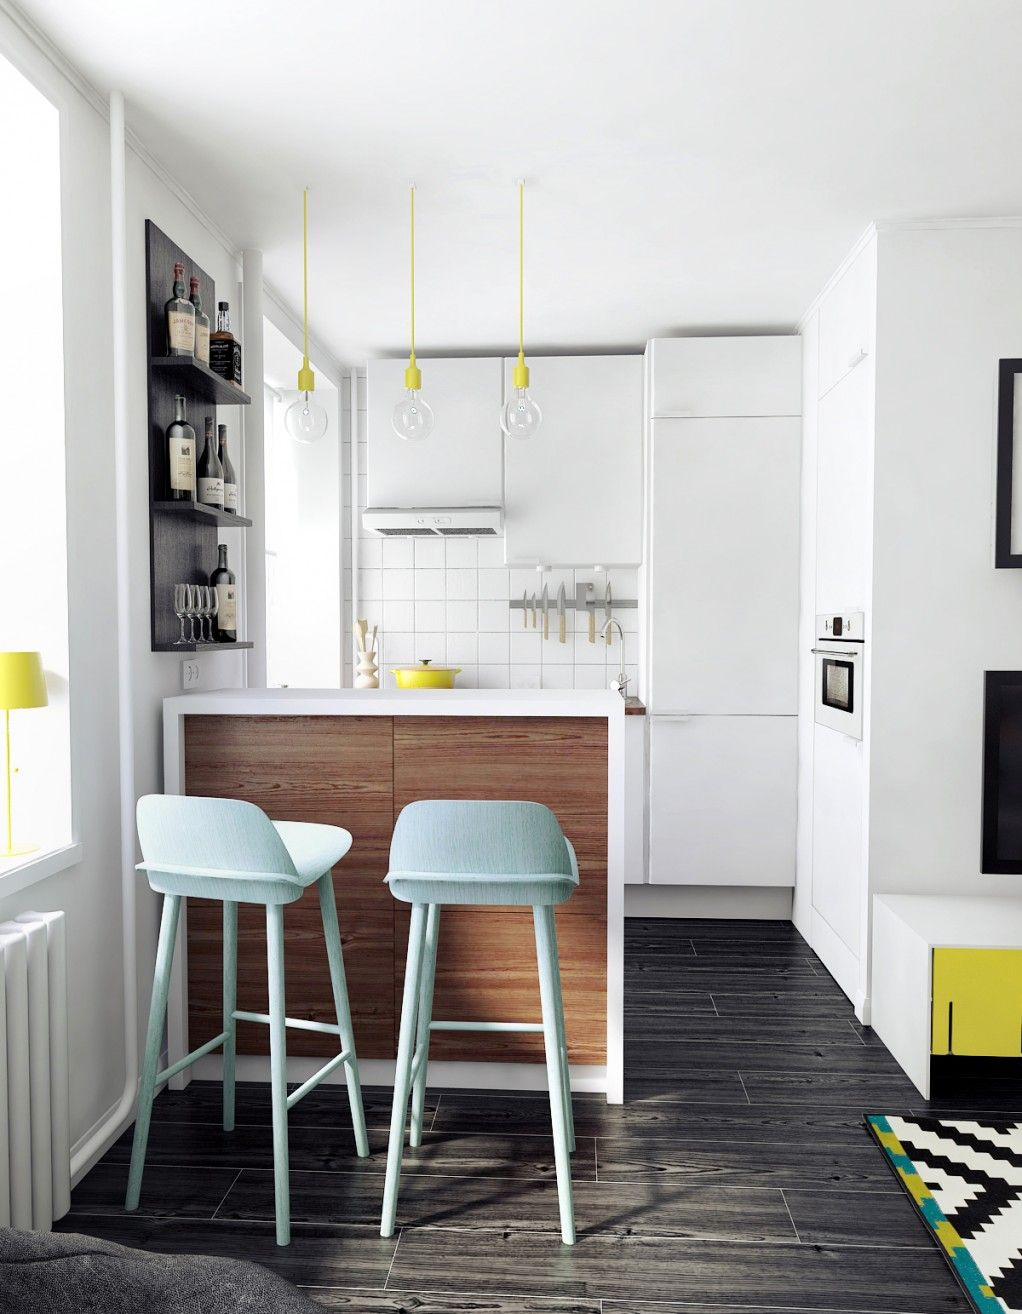 Simple and Clever Space Saving Ideas for Small Kitchens | Pinterest ...